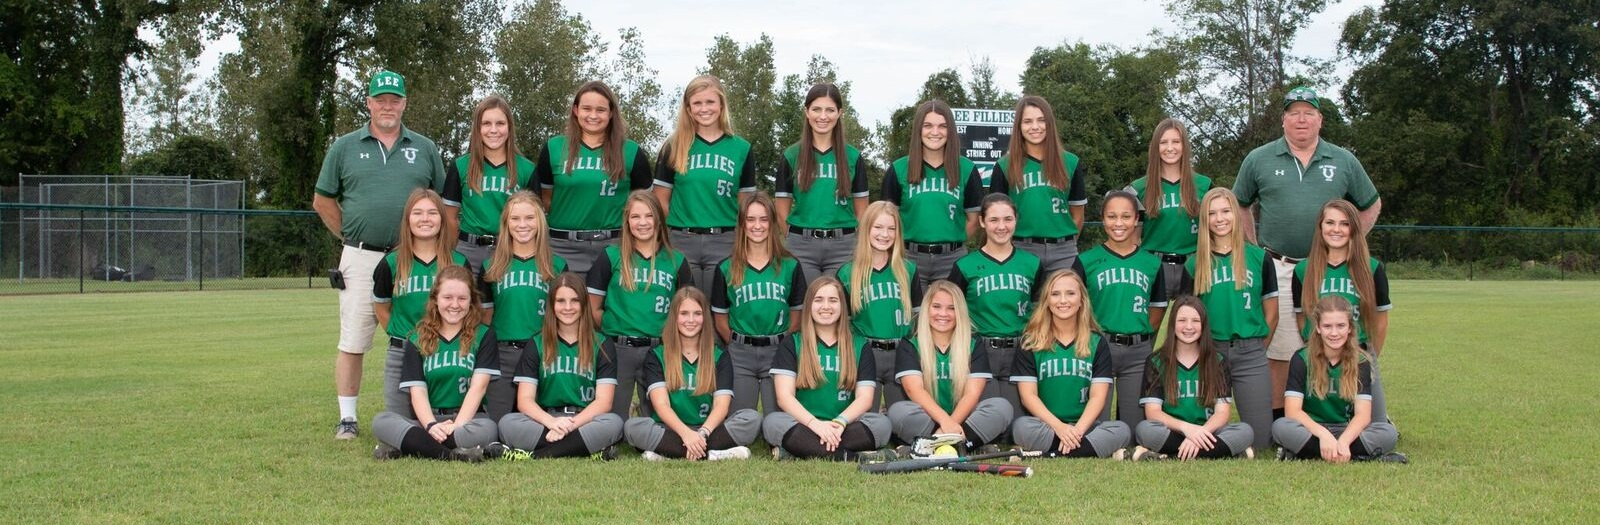 softball 2018 group.jpeg